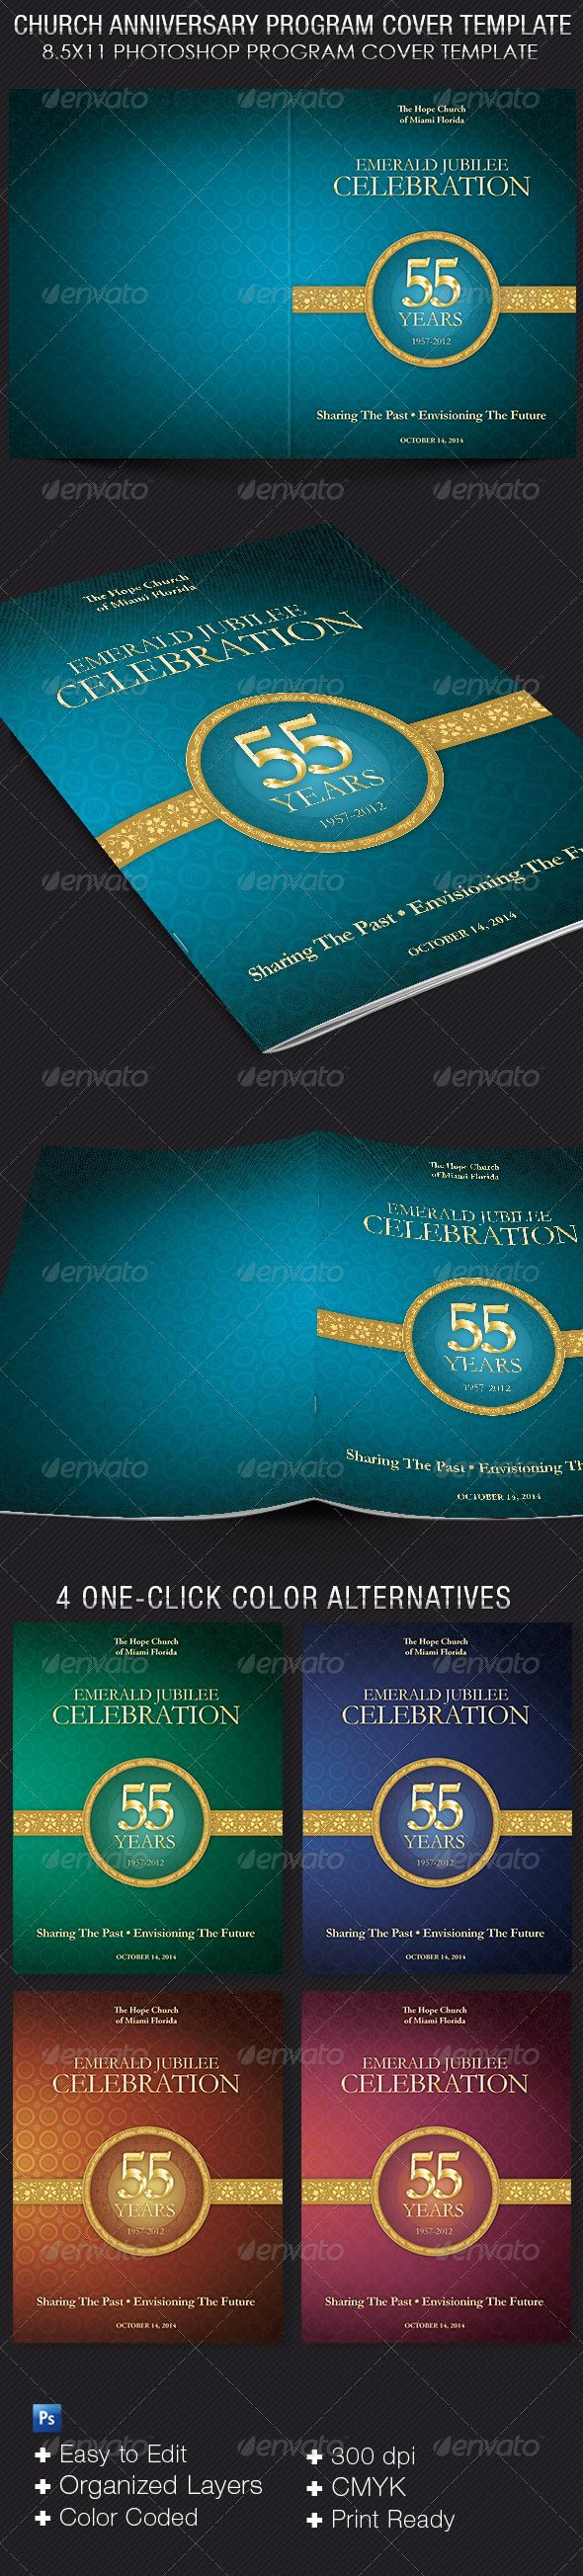 Church Anniversary Program Template Beautiful Church Anniversary Program Cover Template by 4cgraphic